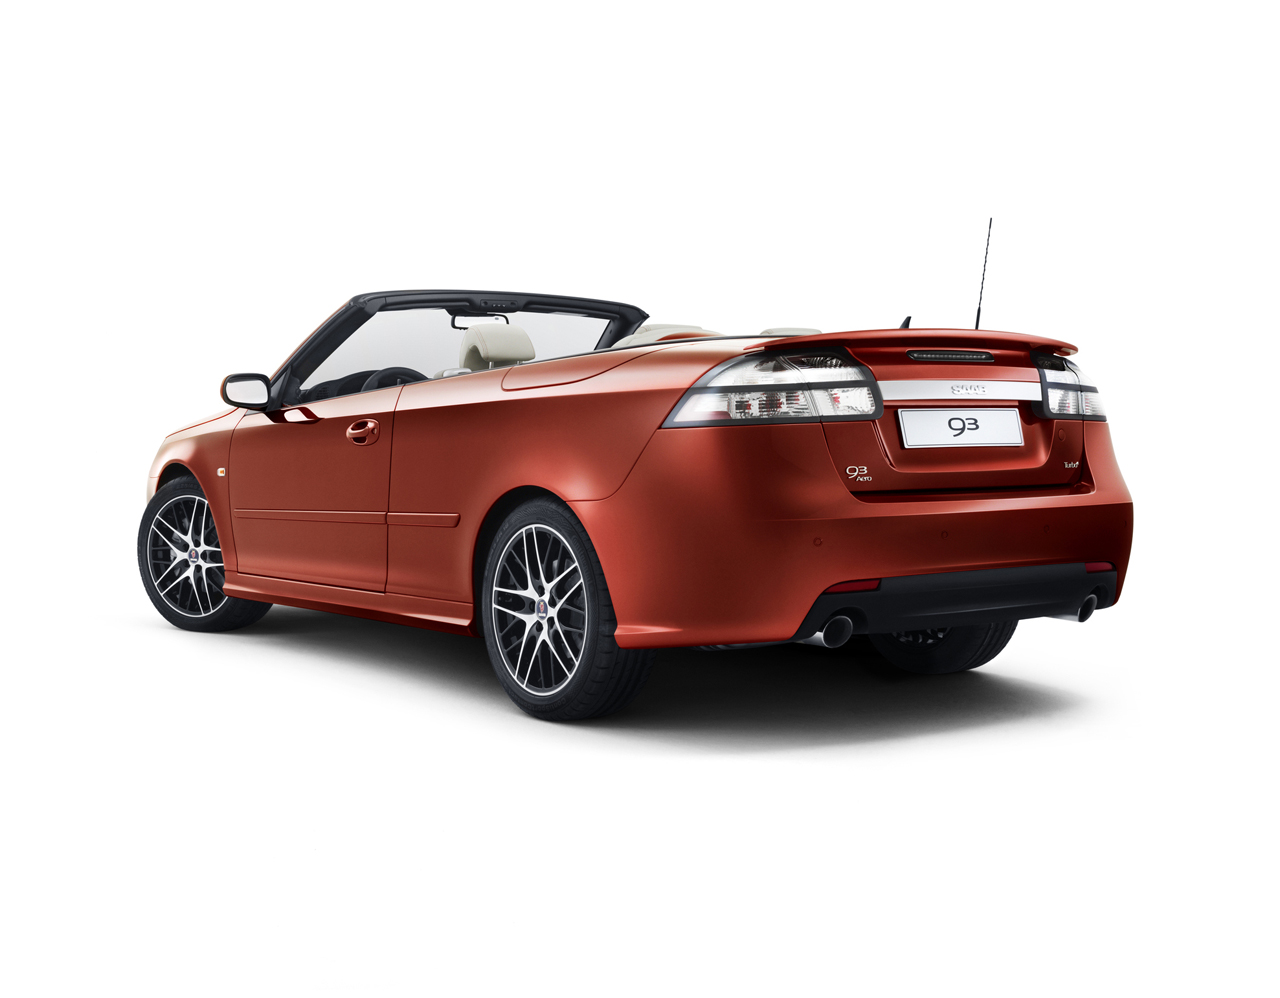 2015 saab 9 3 cabriolet e pictures information and specs auto. Black Bedroom Furniture Sets. Home Design Ideas